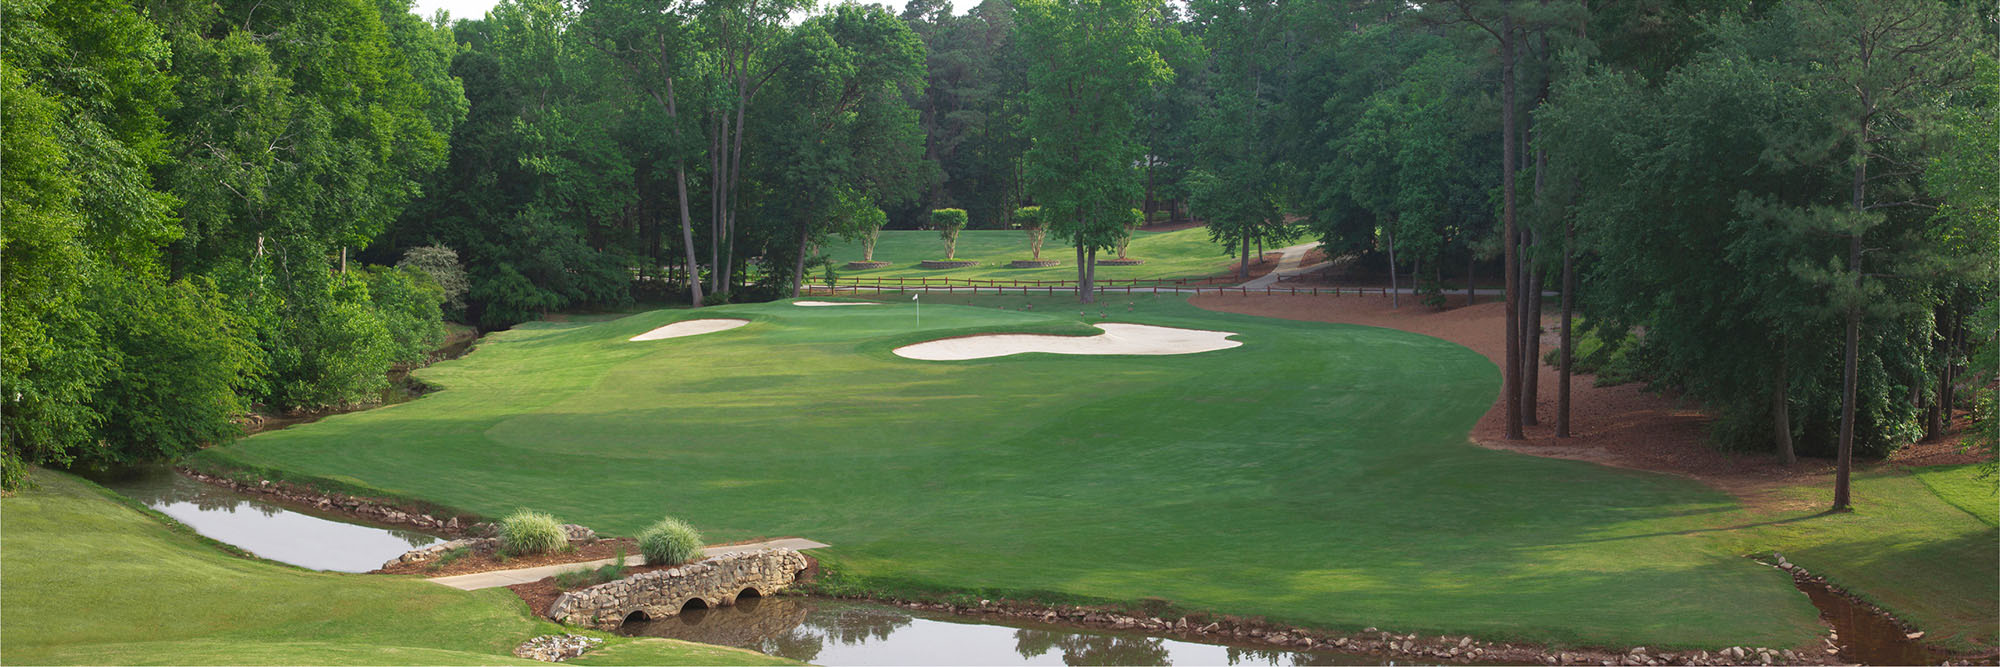 Golf Course Image - MacGregor Downs No. 16